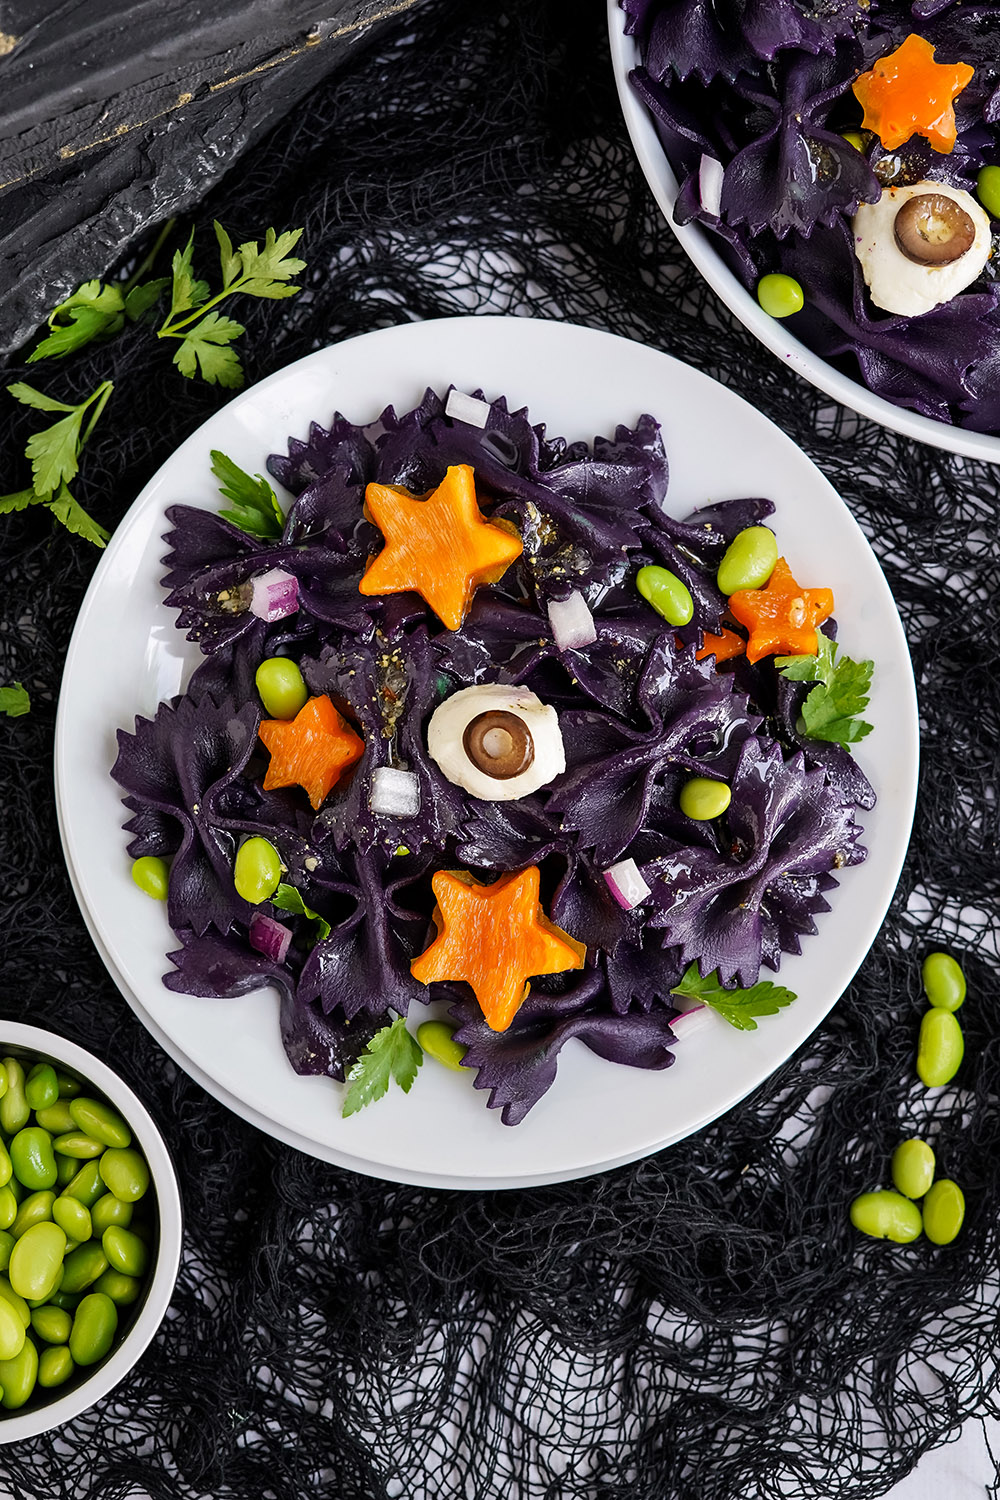 Overhead image of halloween pasta salad with bowls of ingredients on the table.